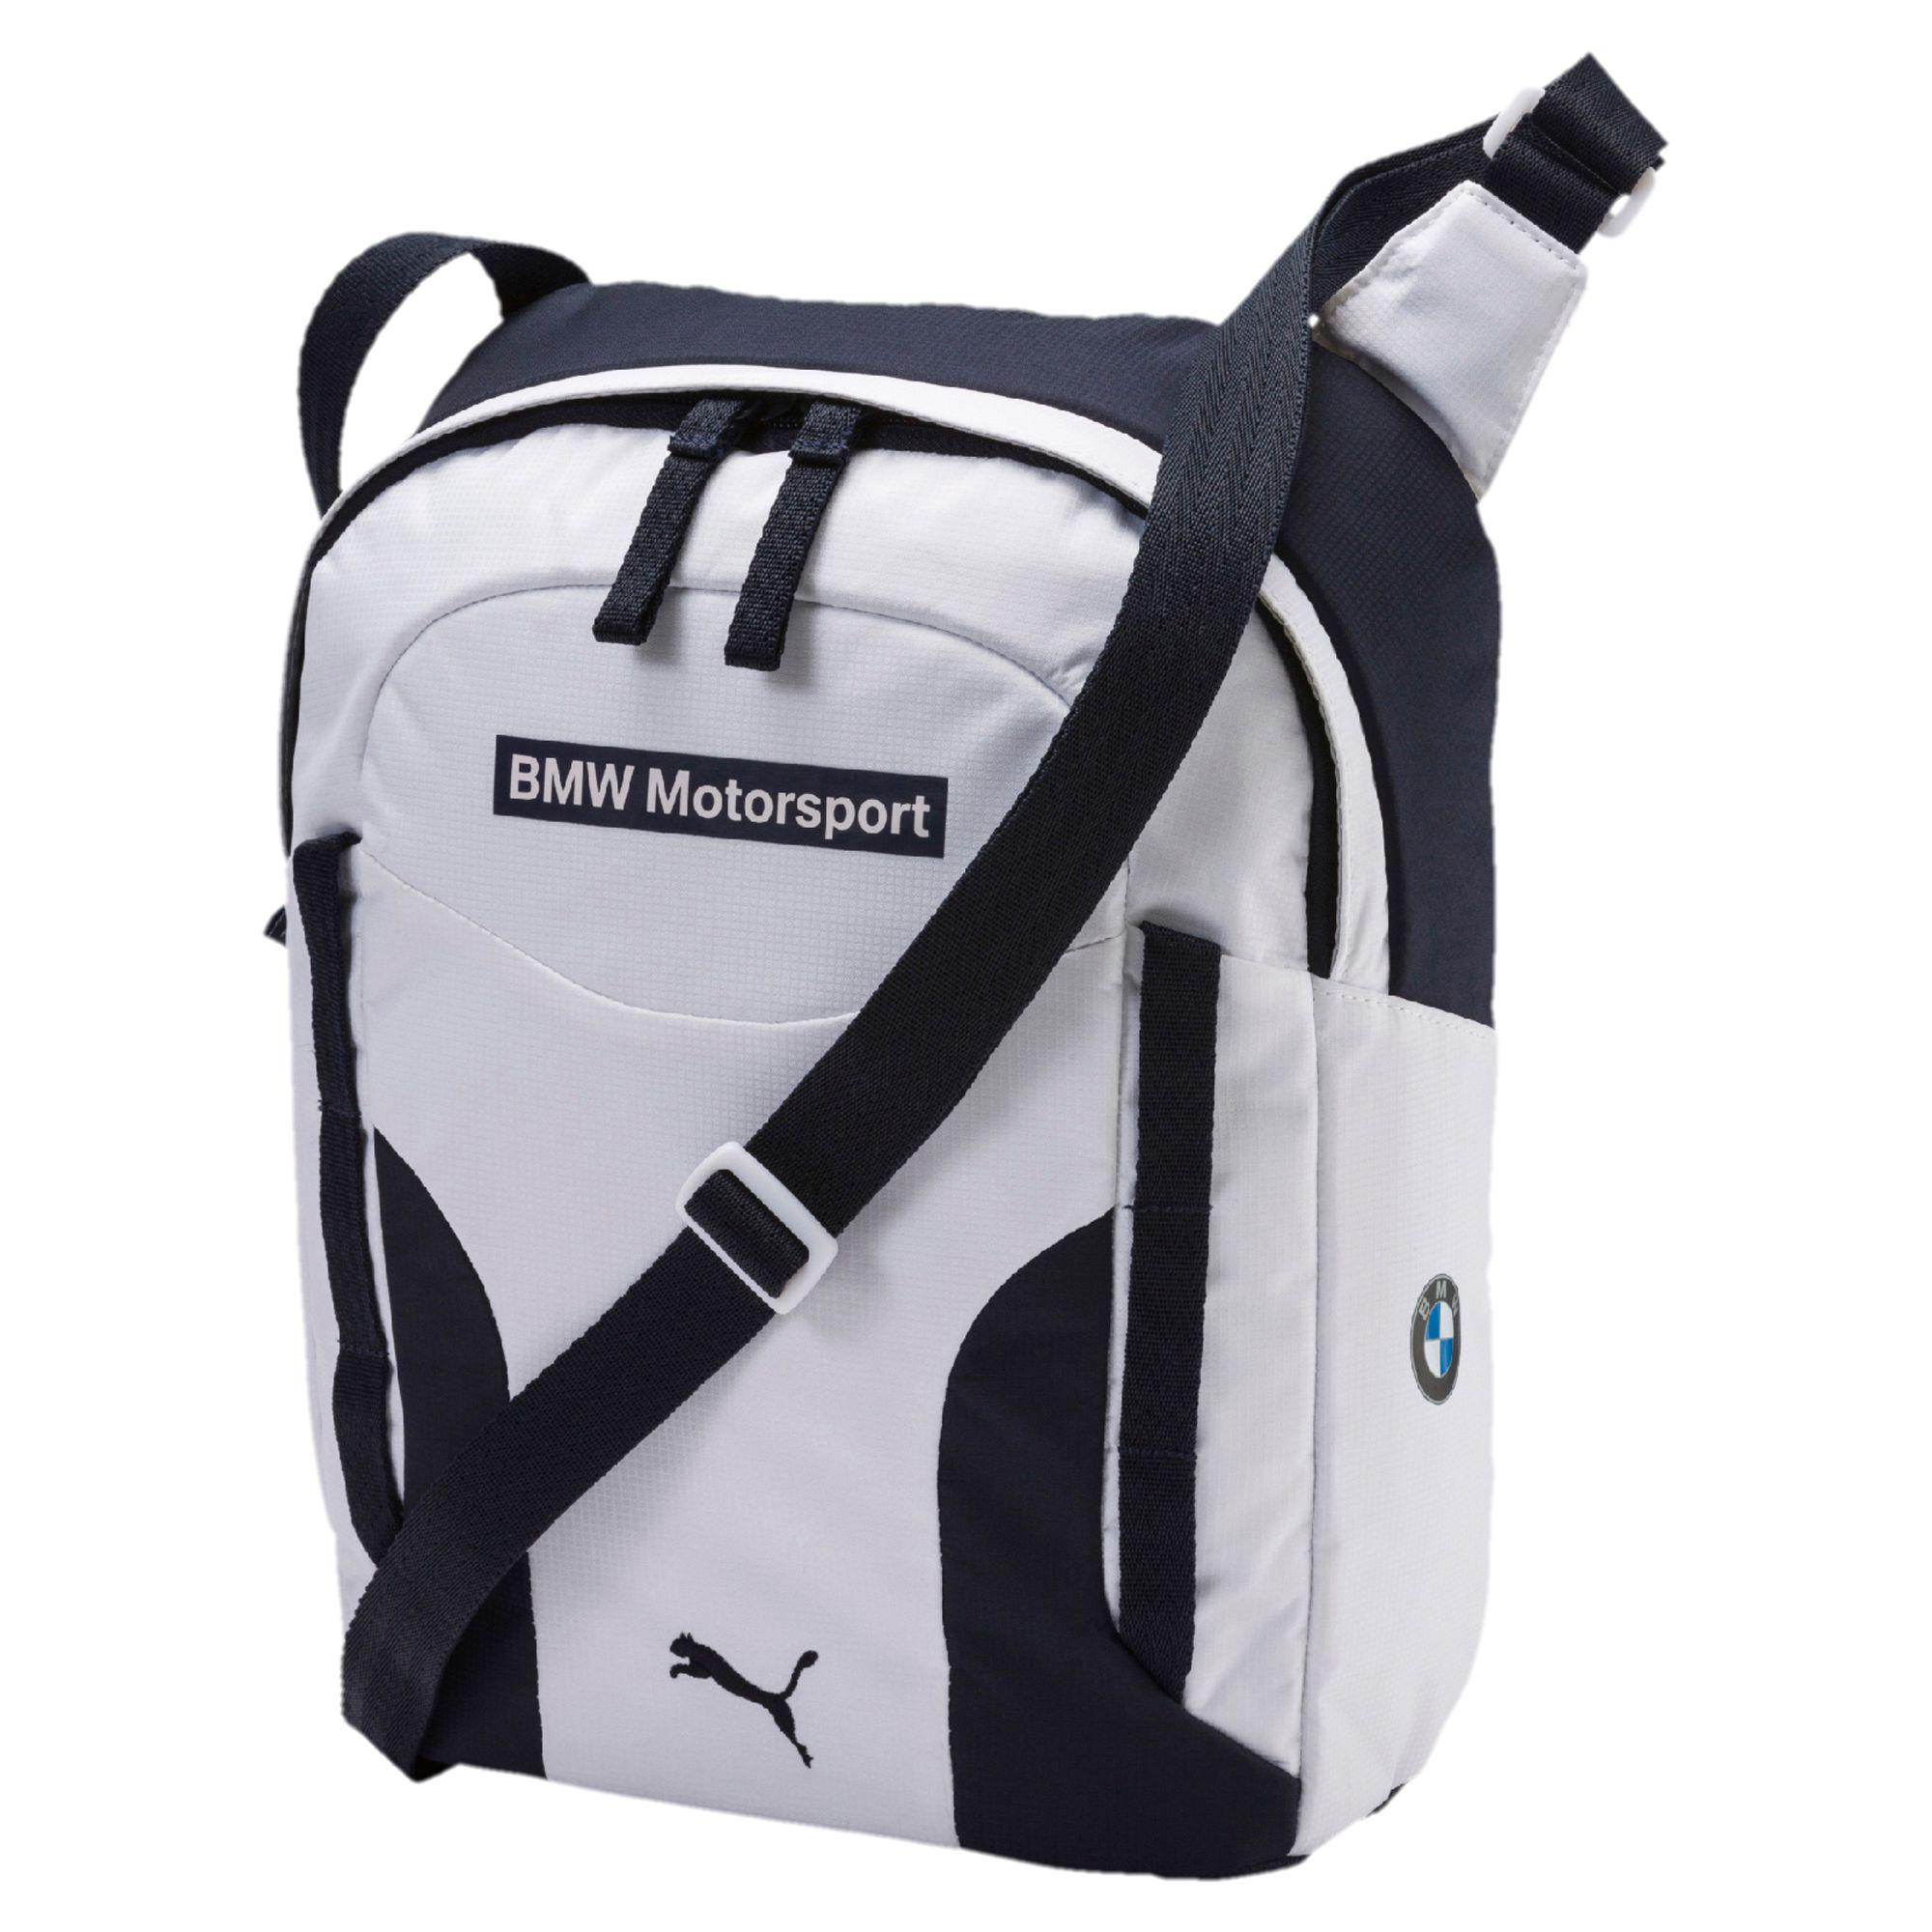 55f3ccb463 Lyst - Puma Bmw Motorsport Portable in Blue for Men